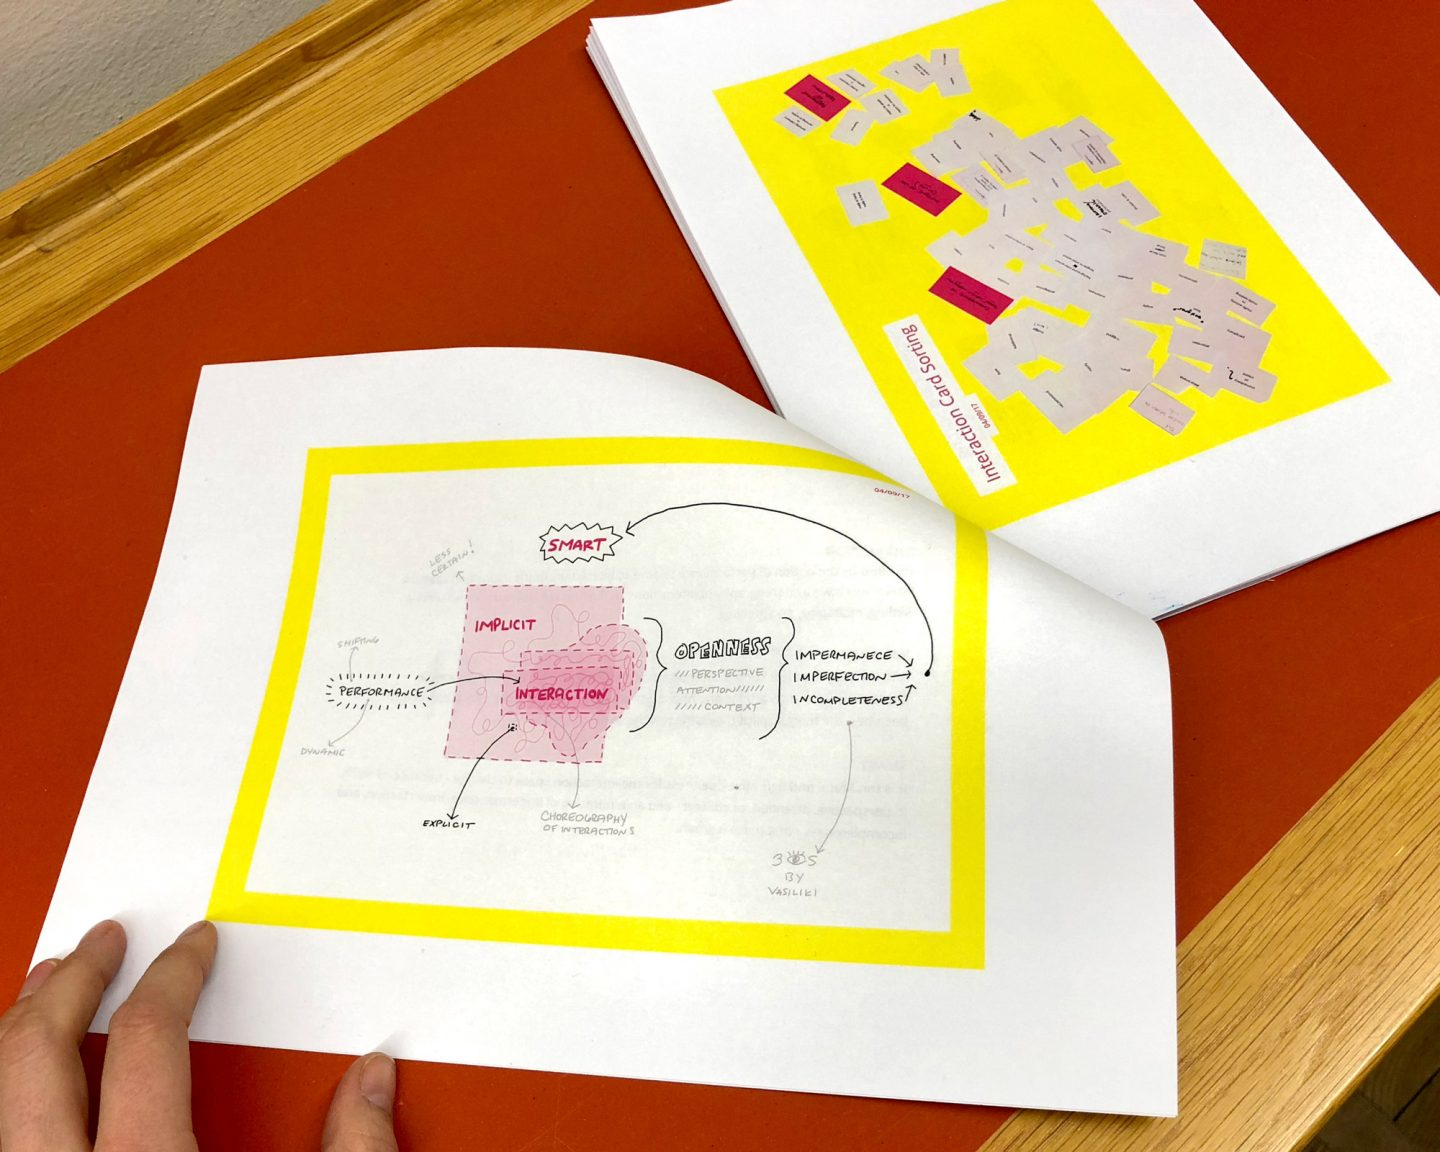 A printed spread featuring card-sorting activities and conceptual diagraming